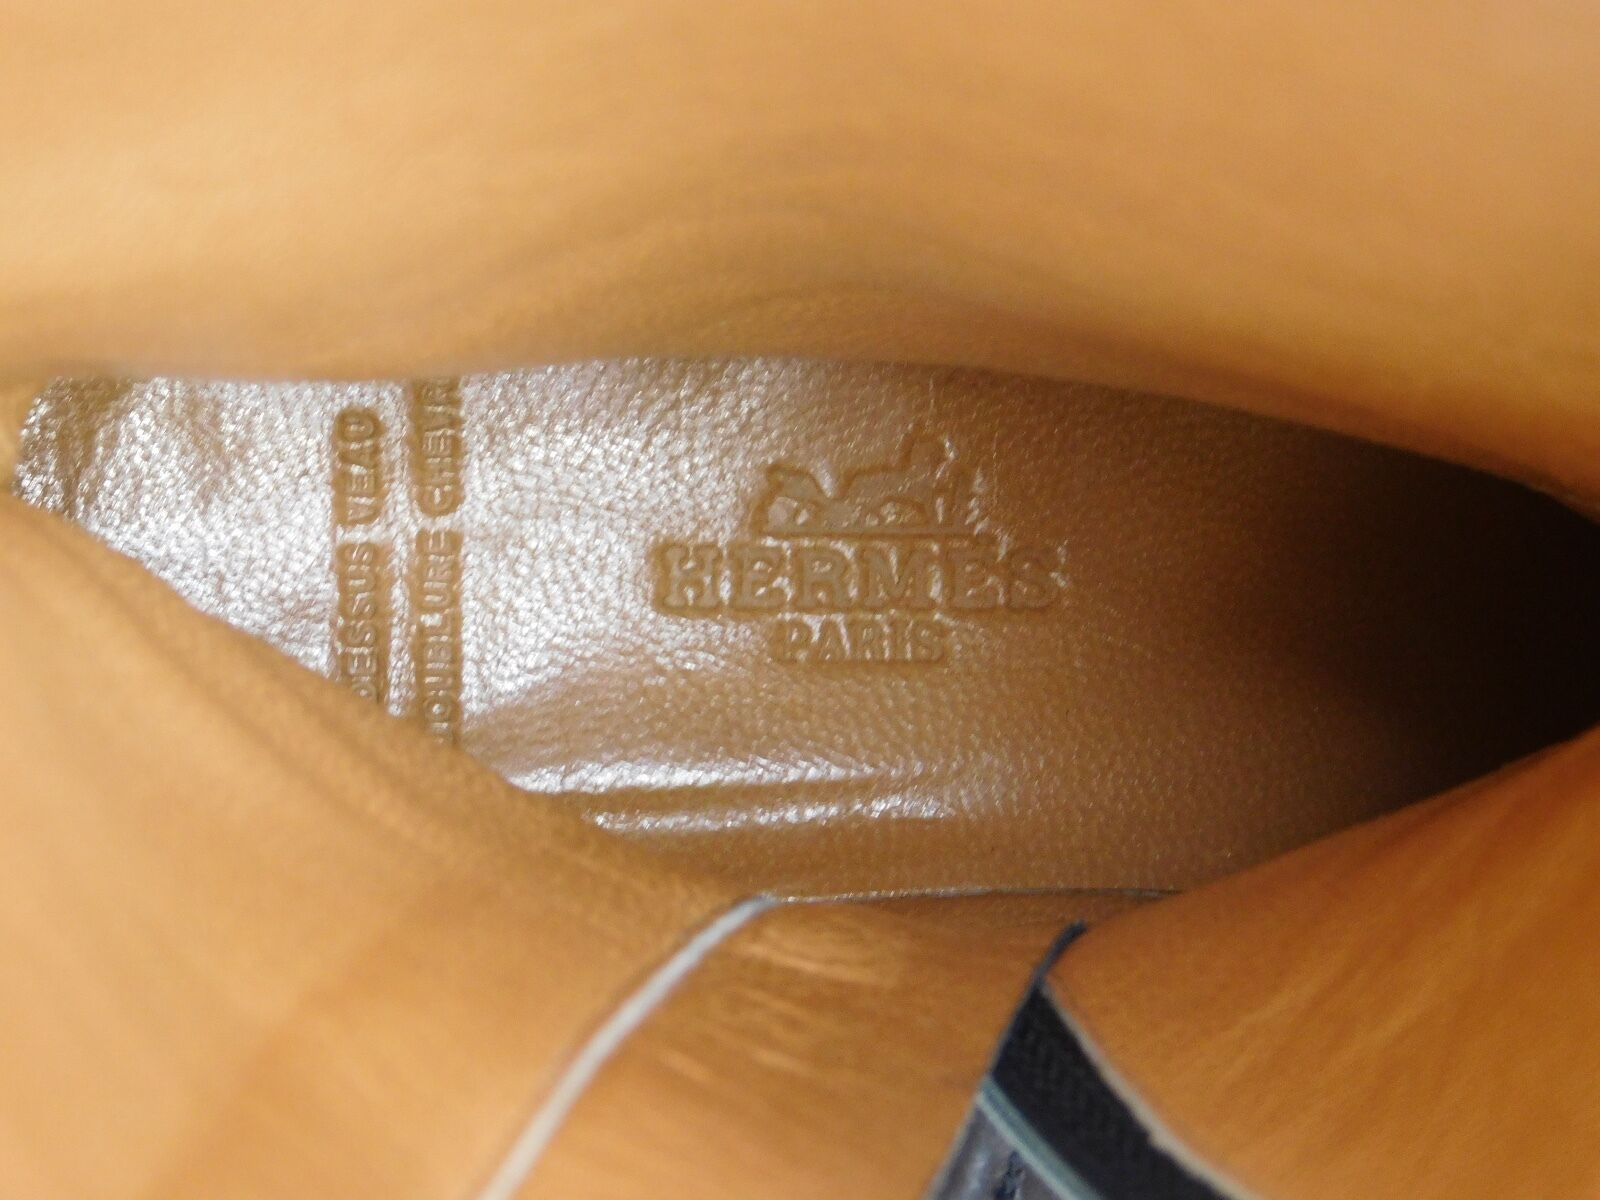 Hermes Paris Brown Soft Soft Soft Leather Riding Style Boots 37.5 US 7 Semelle Cuir 6199 f03954